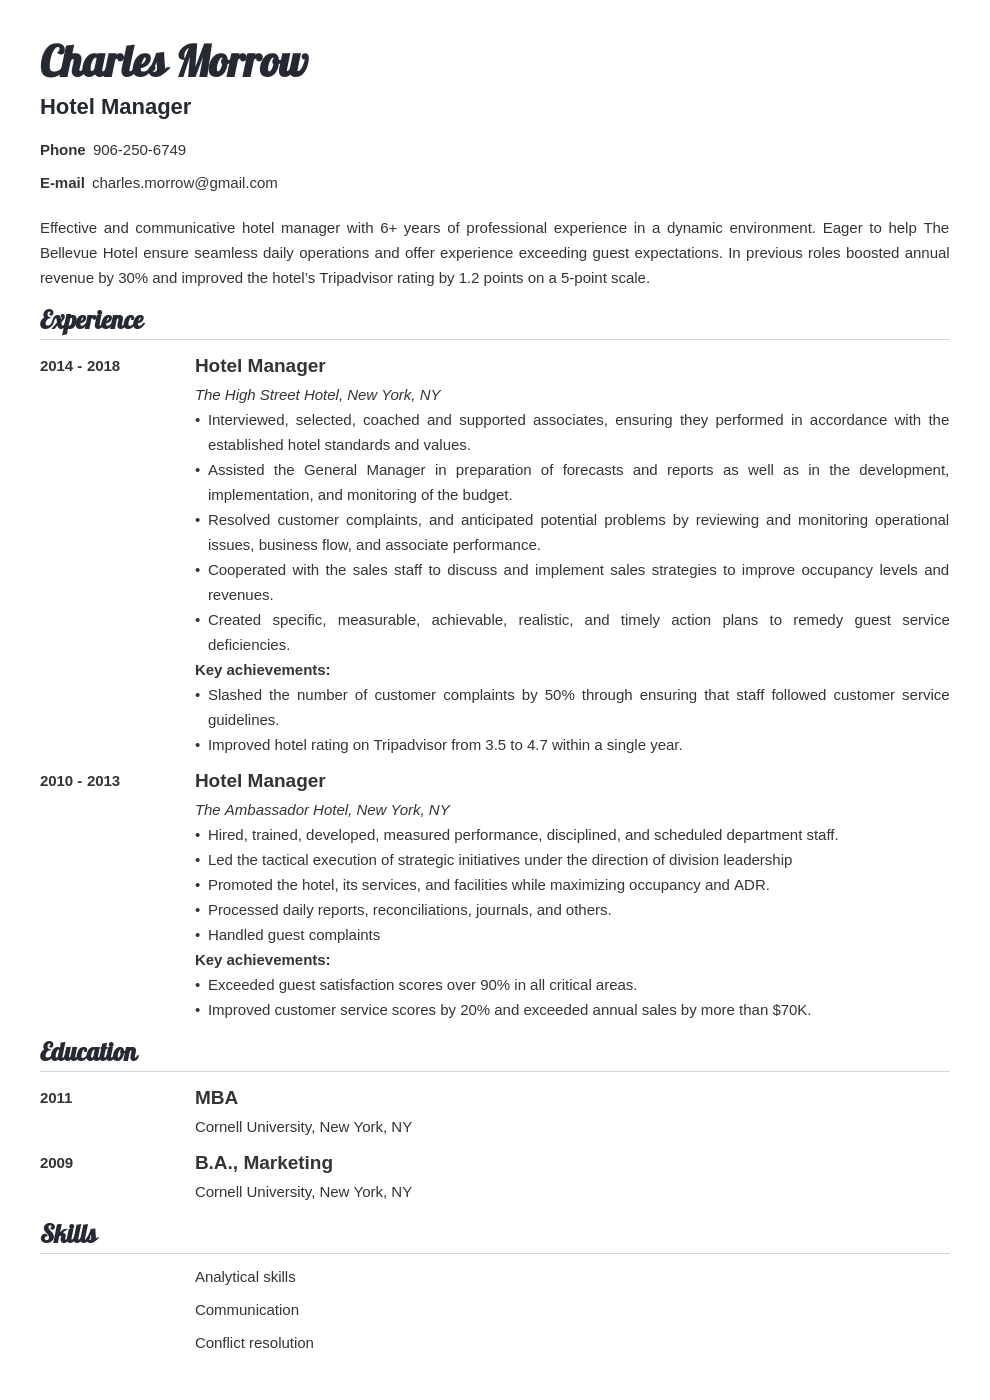 hotel manager resume example template valera